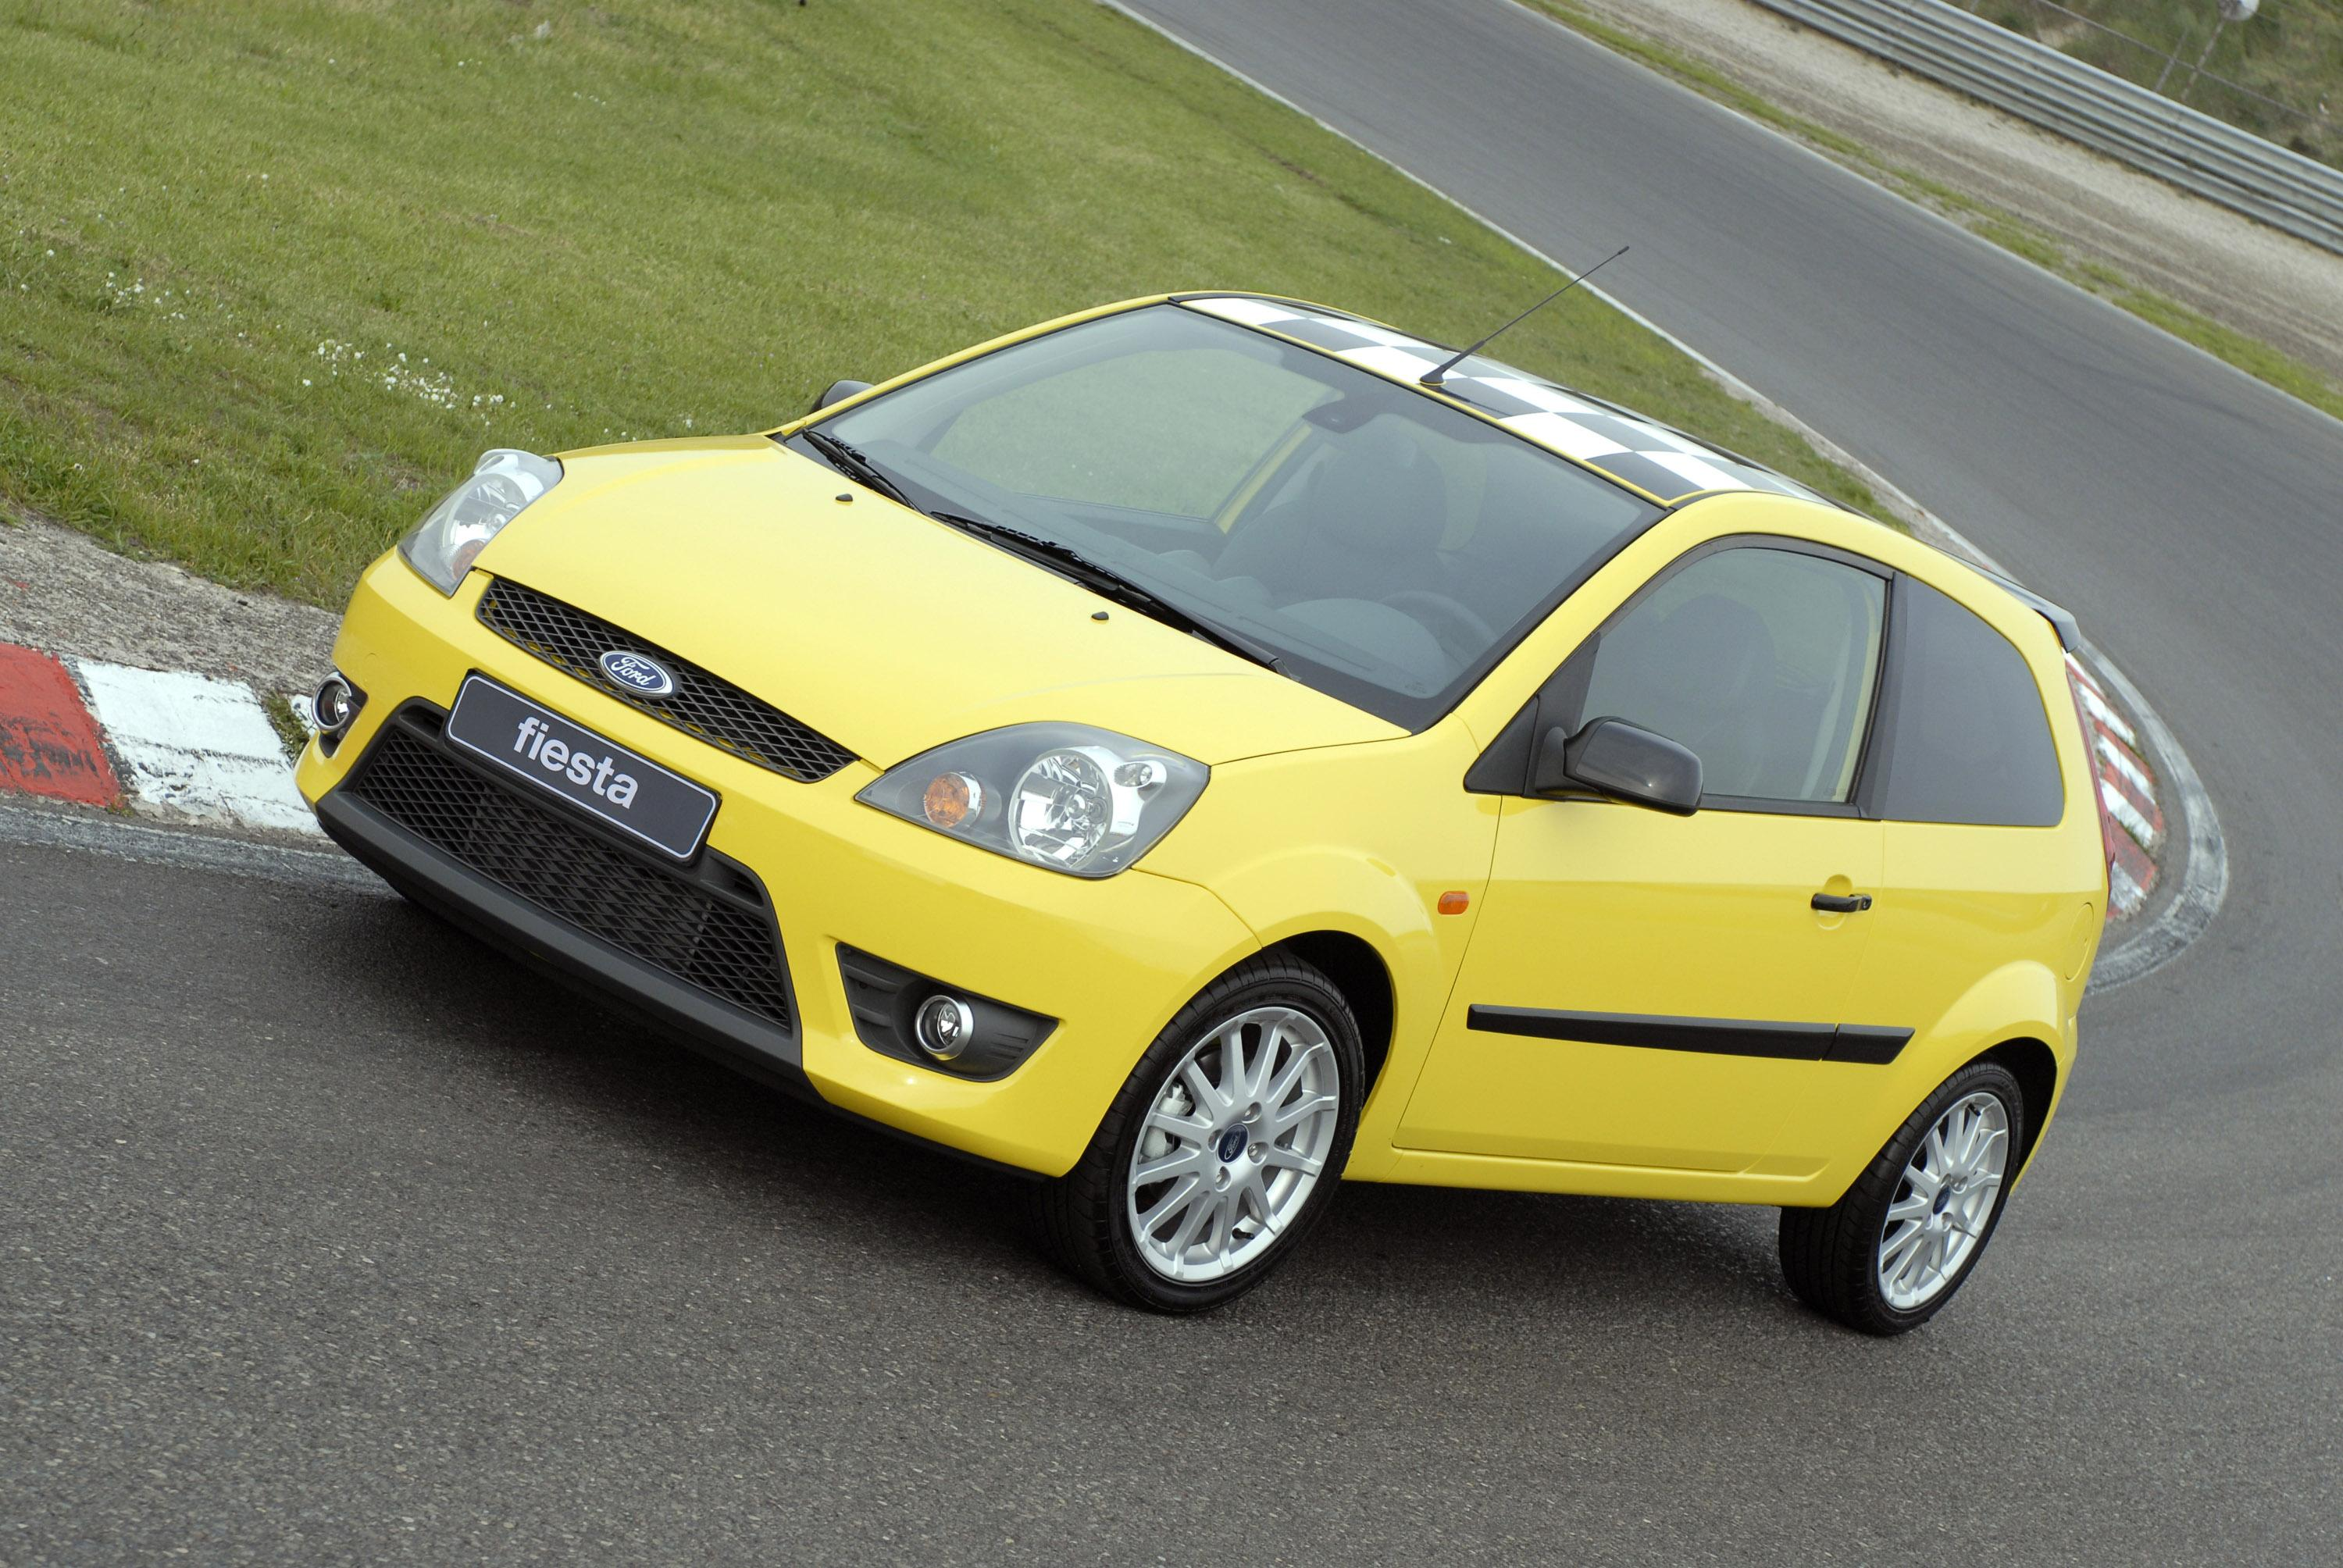 2007 ford fiesta zetec s anniversary edition review. Black Bedroom Furniture Sets. Home Design Ideas